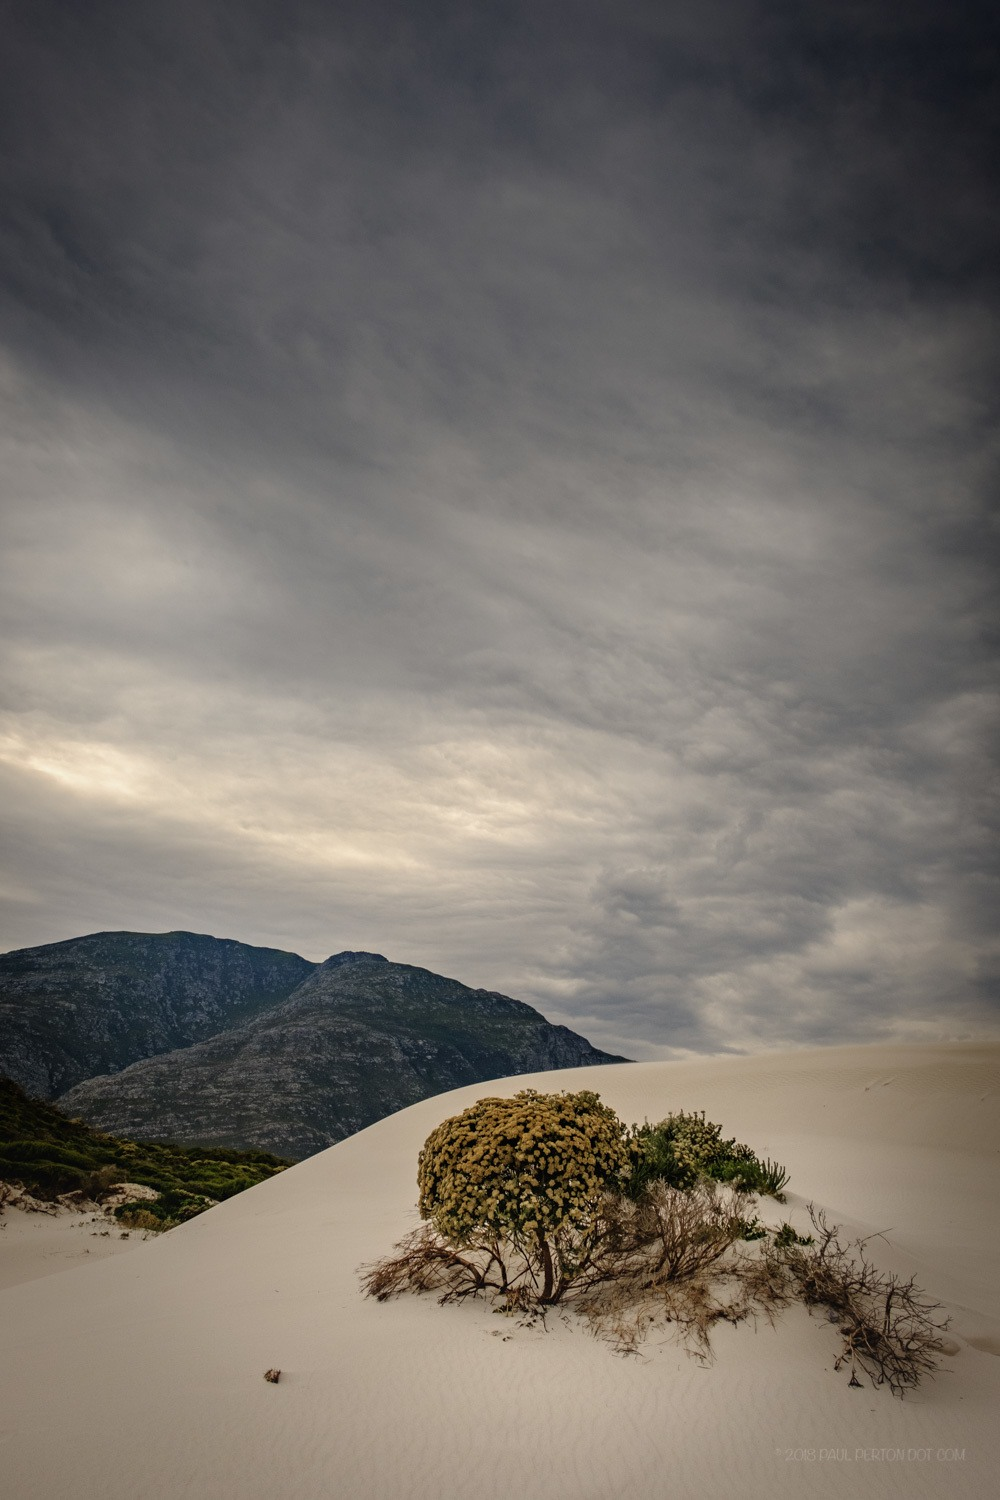 Dunes at Betty's Bay - X-H1, 16mm f1.4 @ f11